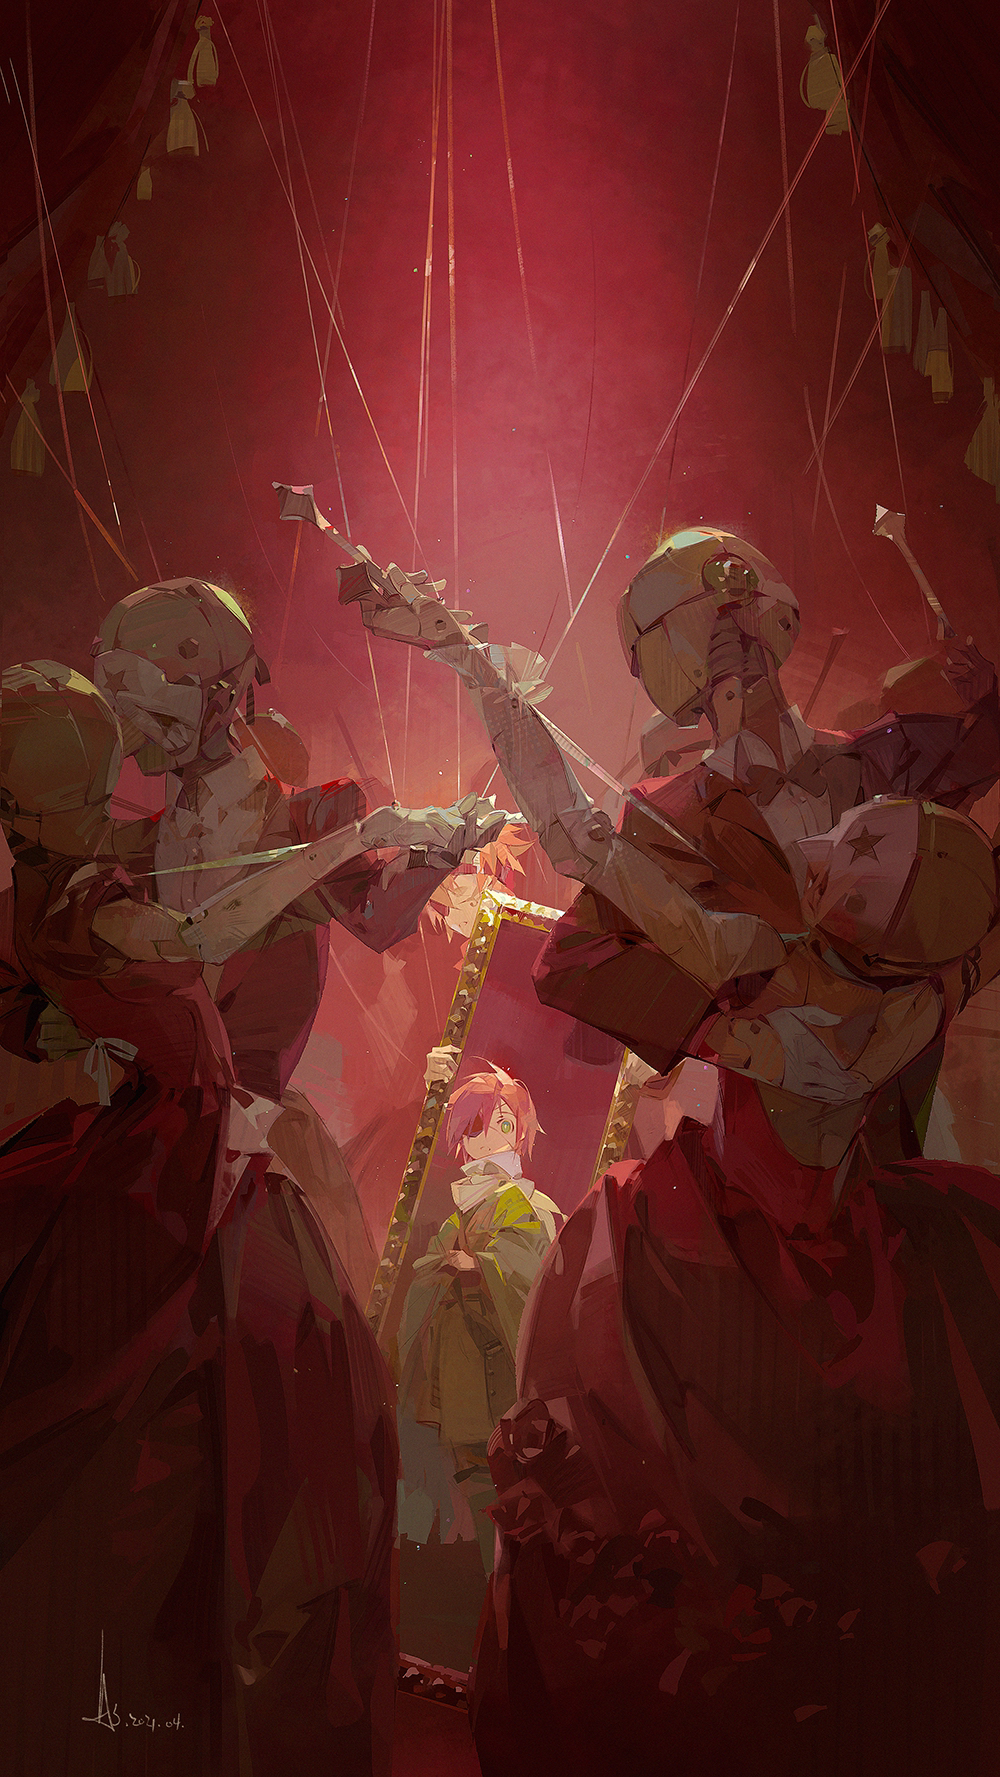 2boys 4others a-shacho bow bowtie carnival_mask d.gray-man dancing dress dress_shirt english_commentary eyepatch green_eyes hair_down headband highres holding joints lavi long_sleeves multiple_boys multiple_others red_dress redhead robot shirt short_hair signature spiky_hair star_(symbol) time_paradox tuxedo wire younger